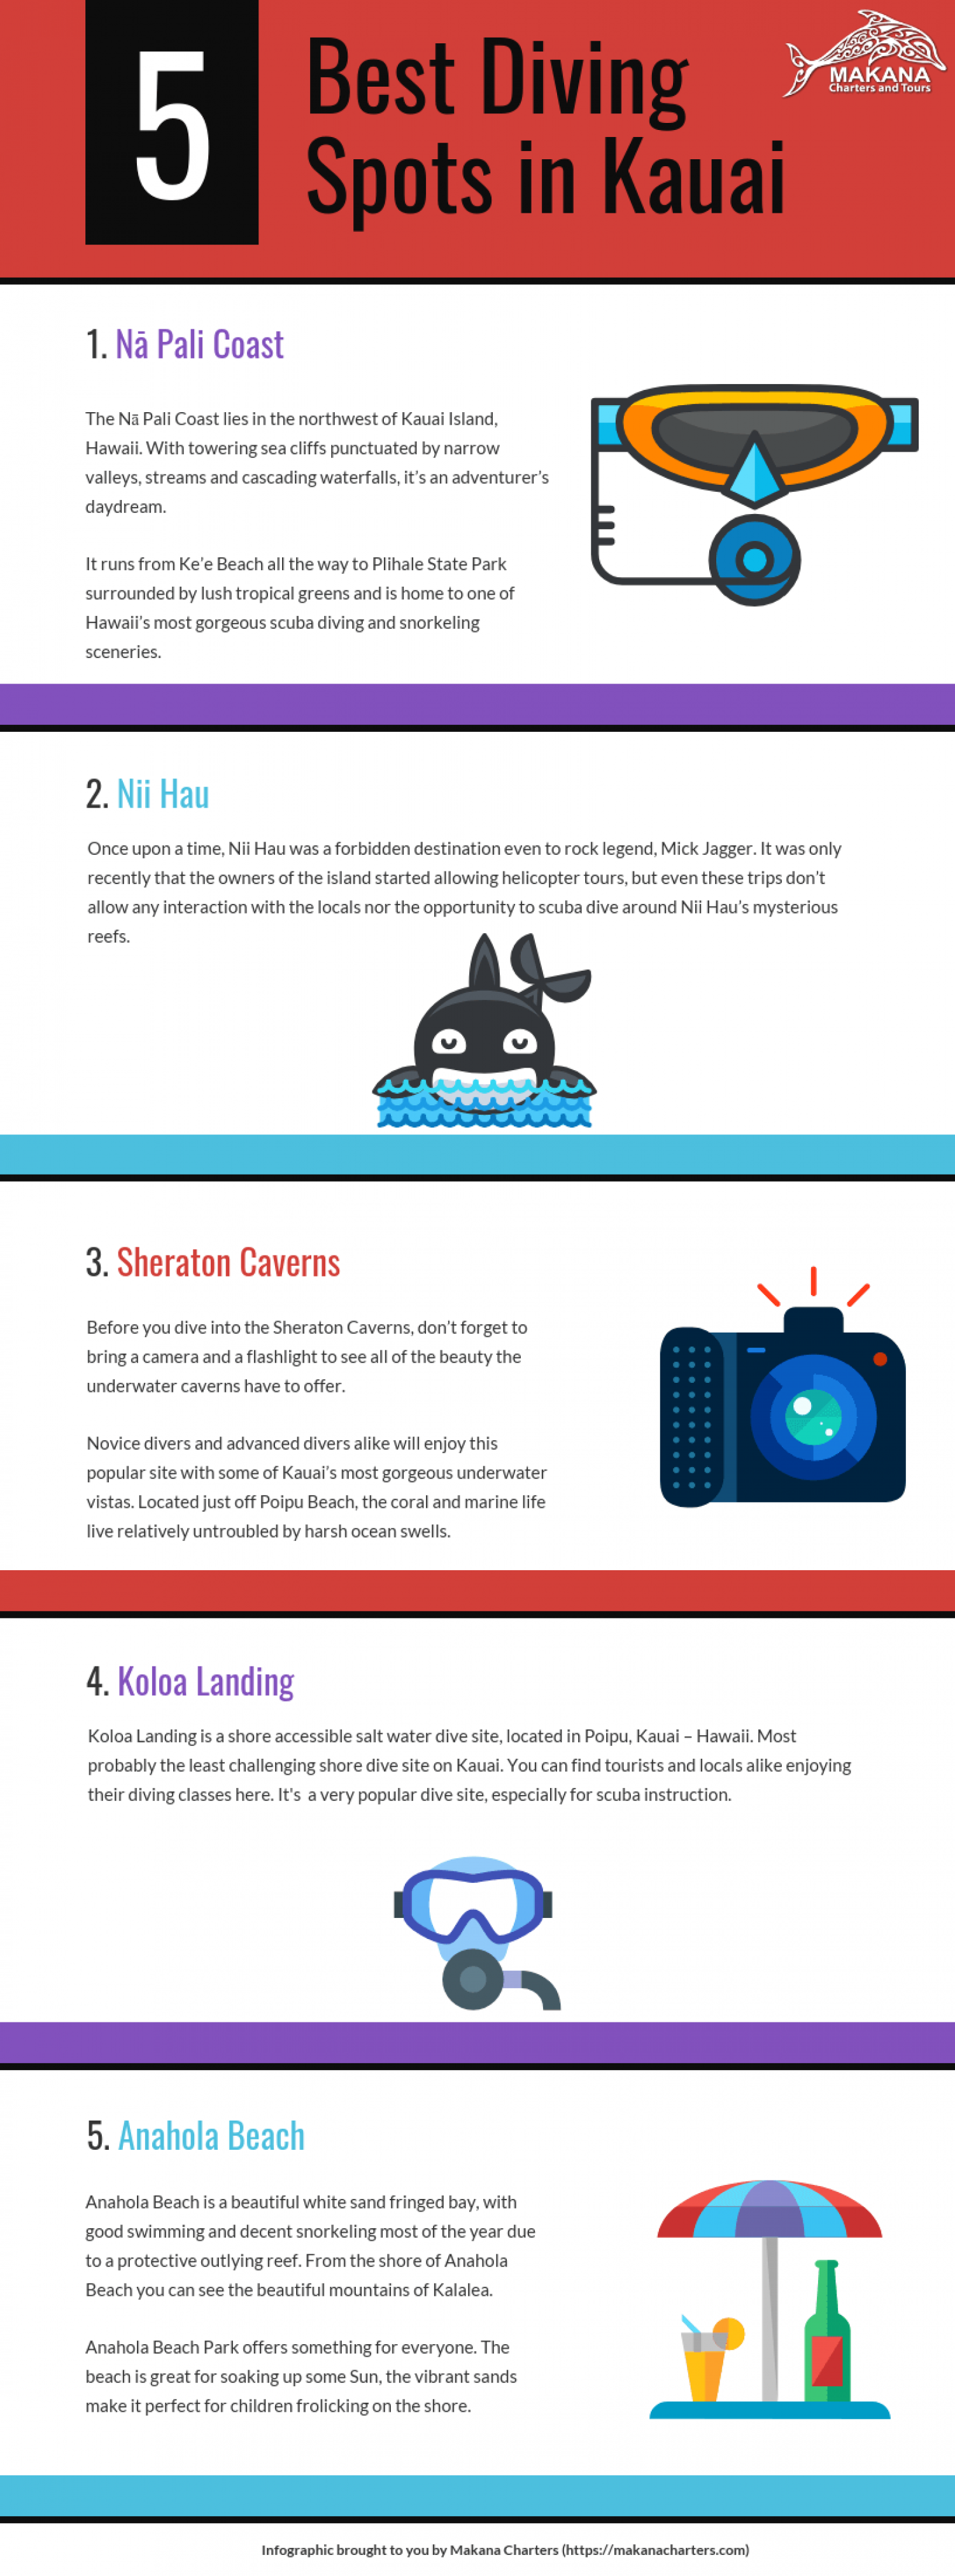 5 of the Best Diving Spots in Kauai [Infographic] Infographic